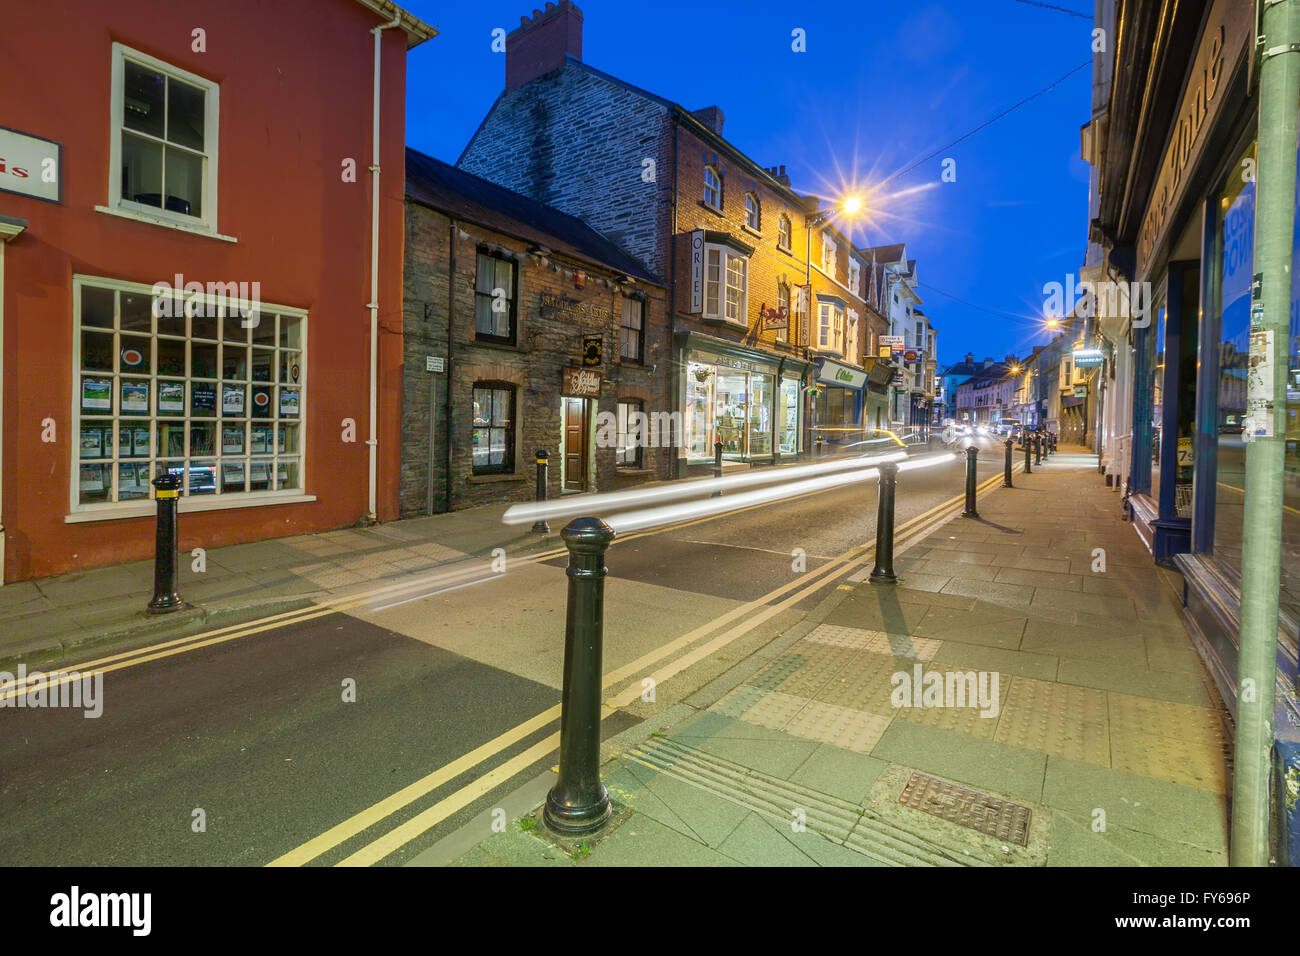 Cardigan High Street in Ceredigion, Wales.  Taken at twilight with traffic trails streaks of light. Stock Photo